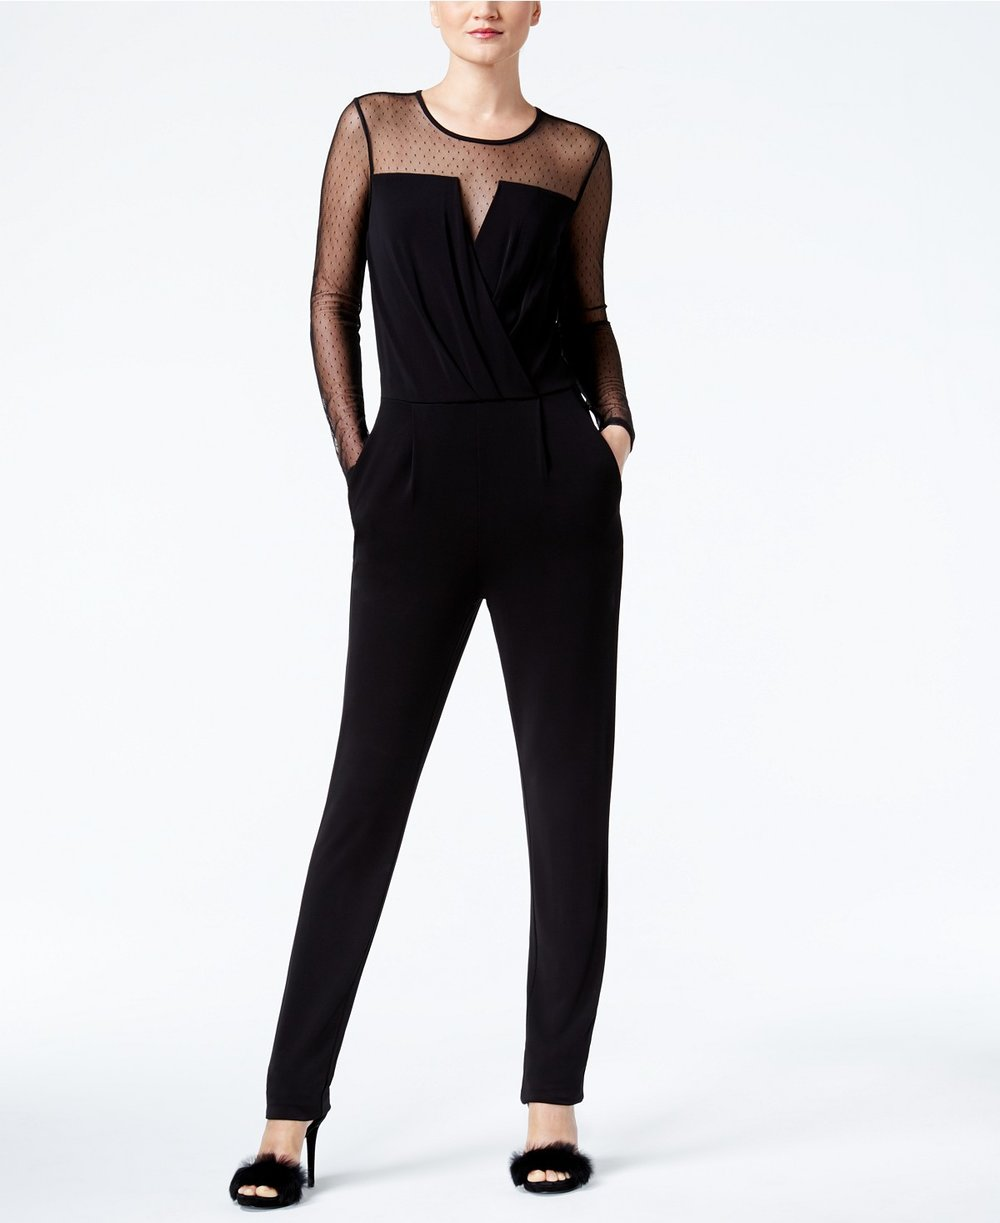 MICHAEL Michael Kors  Petite Mixed-Media Jumpsuit. Macy's. Was: $150. Now: $89.